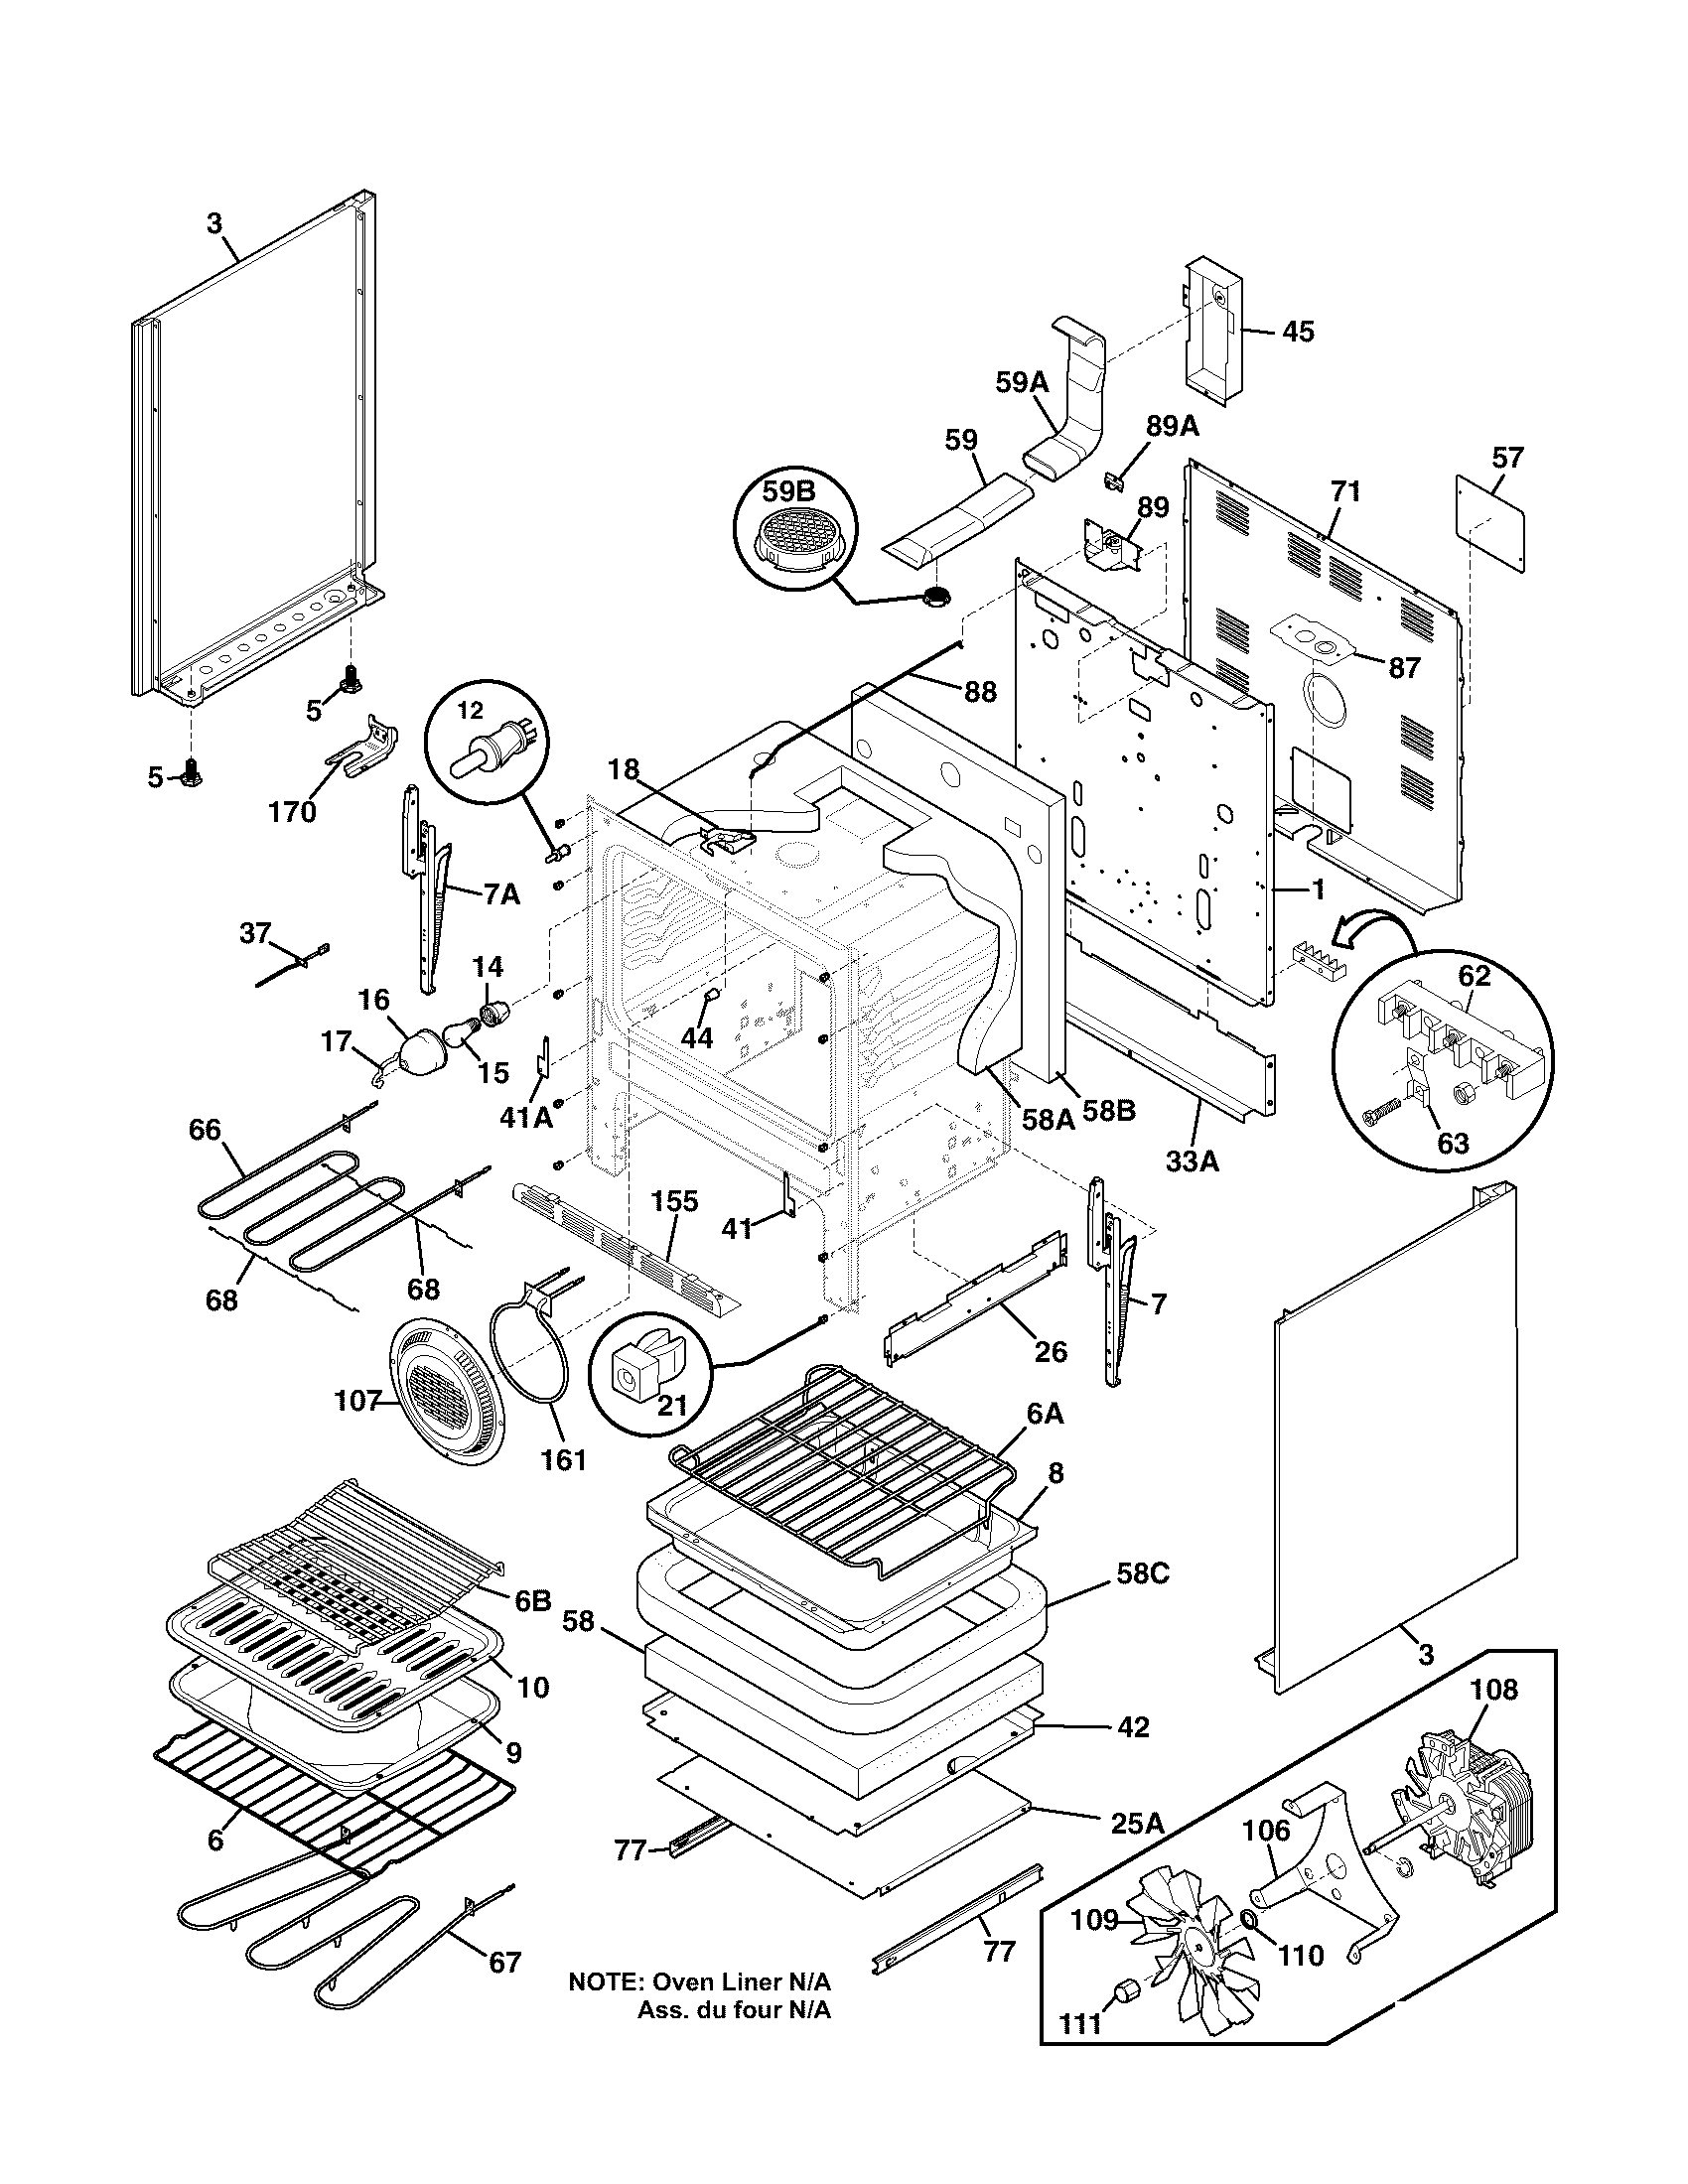 body parts frigidaire plef398ccc electric range timer stove clocks and Wiring Diagram for Miller Electric Furnace at aneh.co